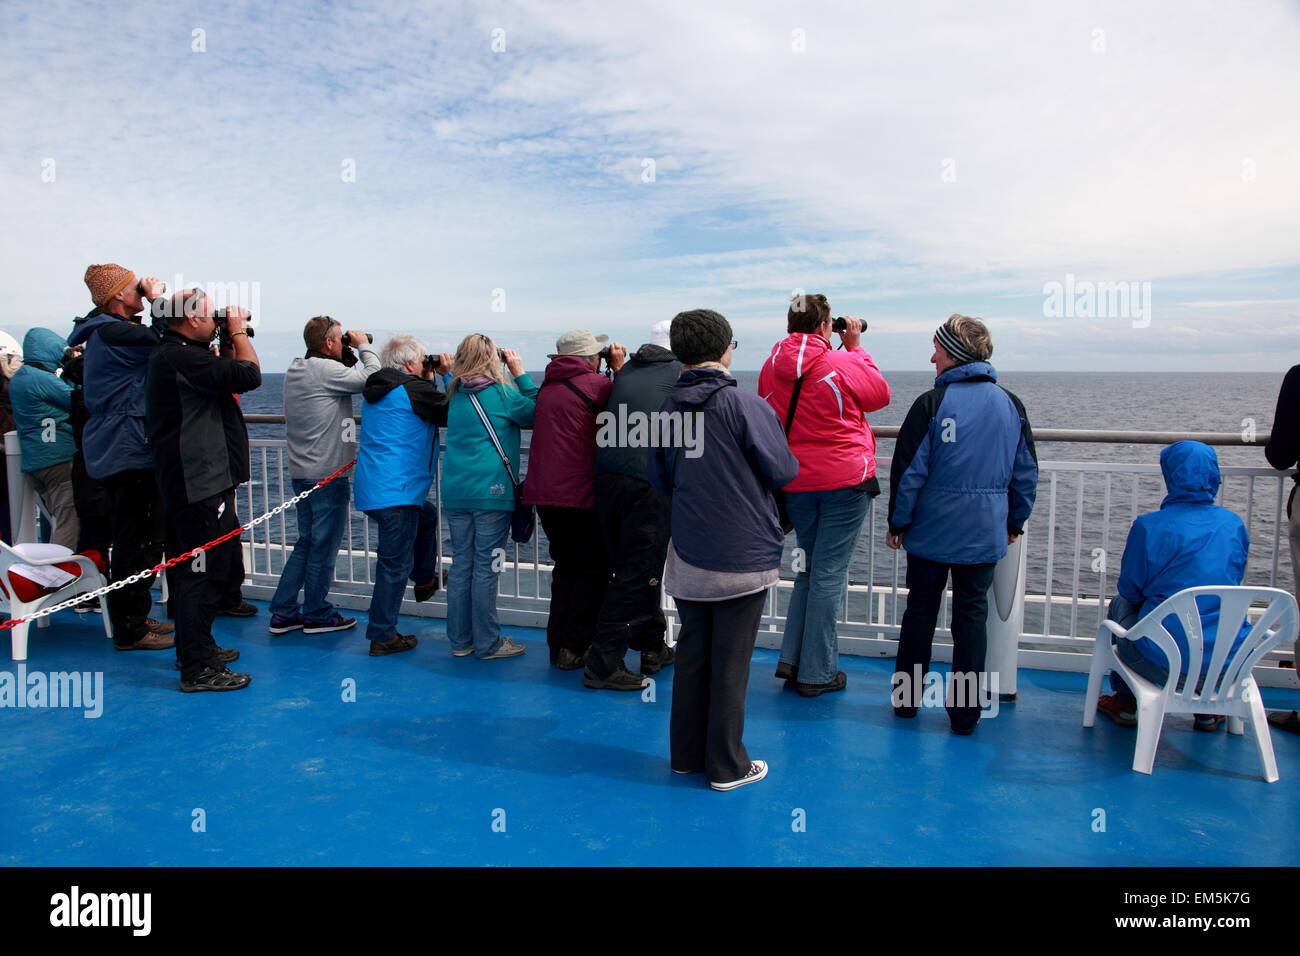 Passengers on the Brittany ferry Pont Aven looking for whales and dolphins - Stock Image